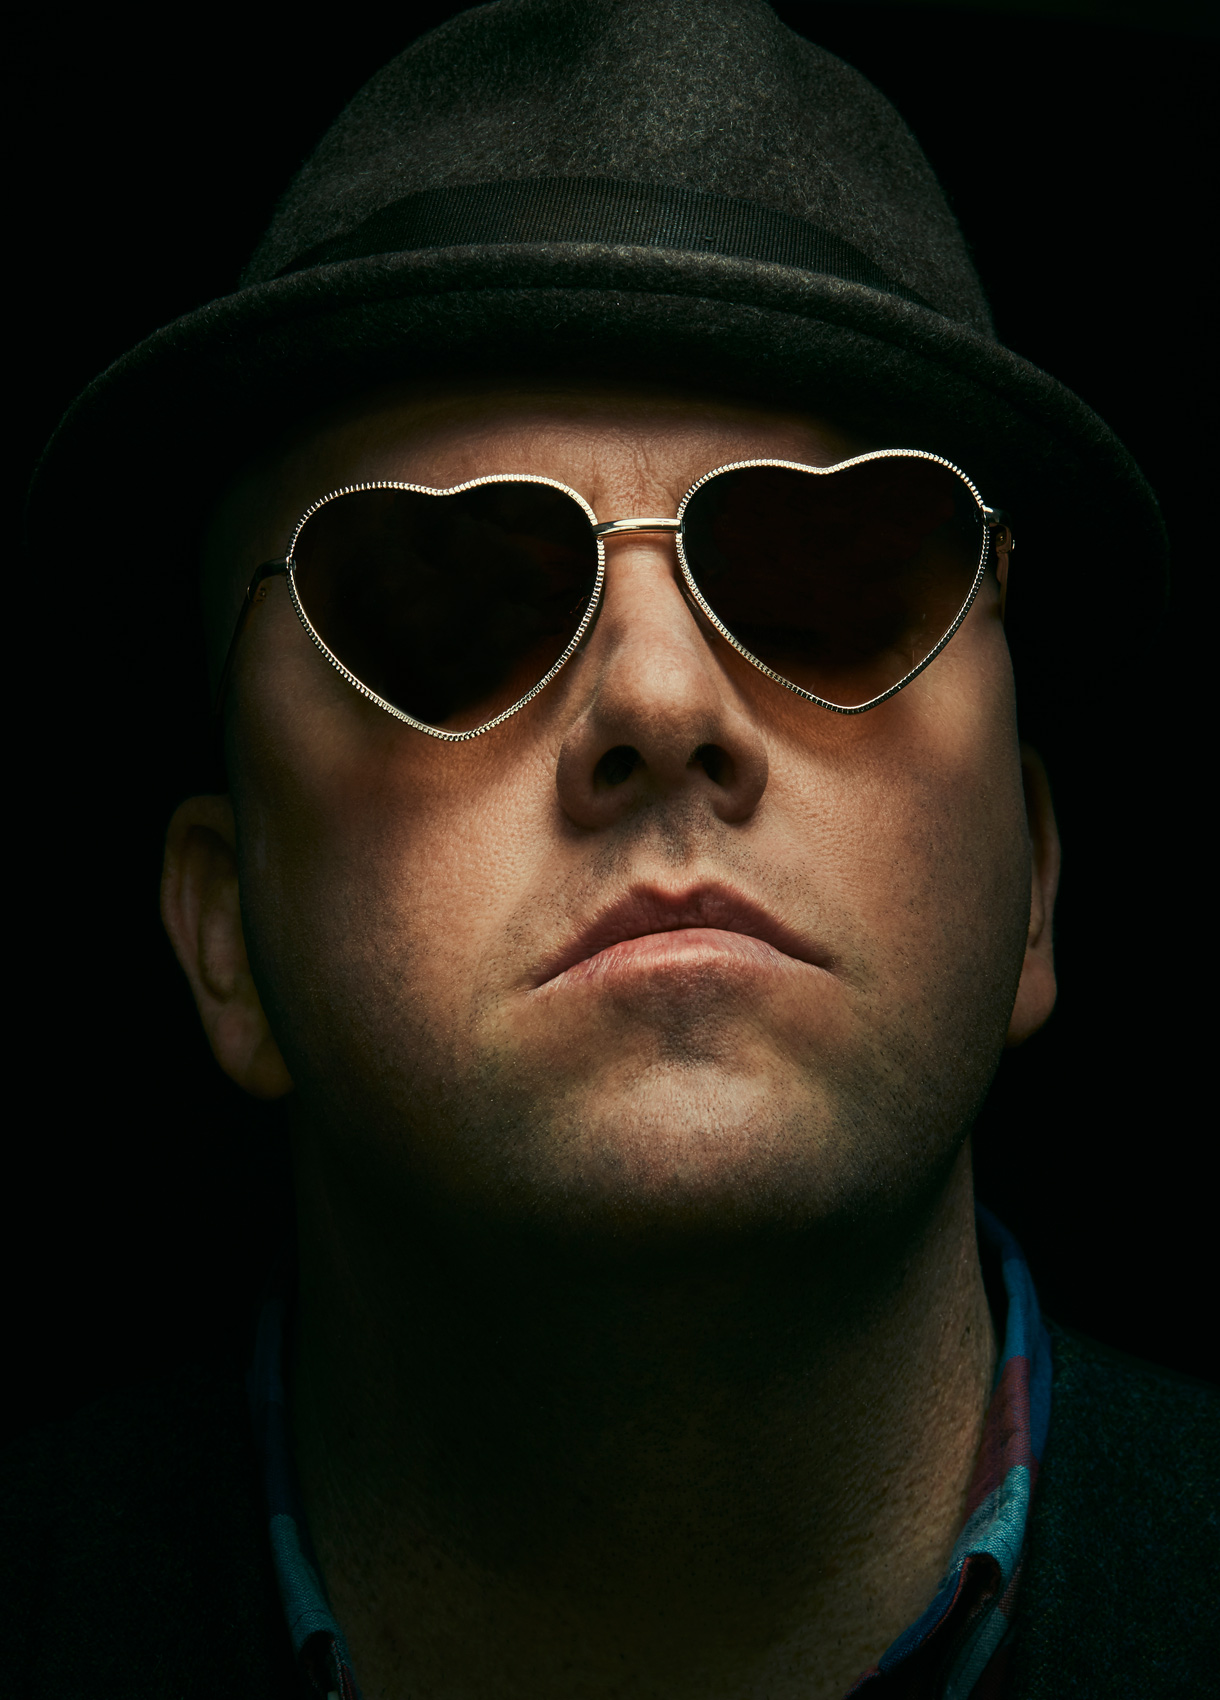 Chris Sullivan - NBC - This Is Us heart Glasses